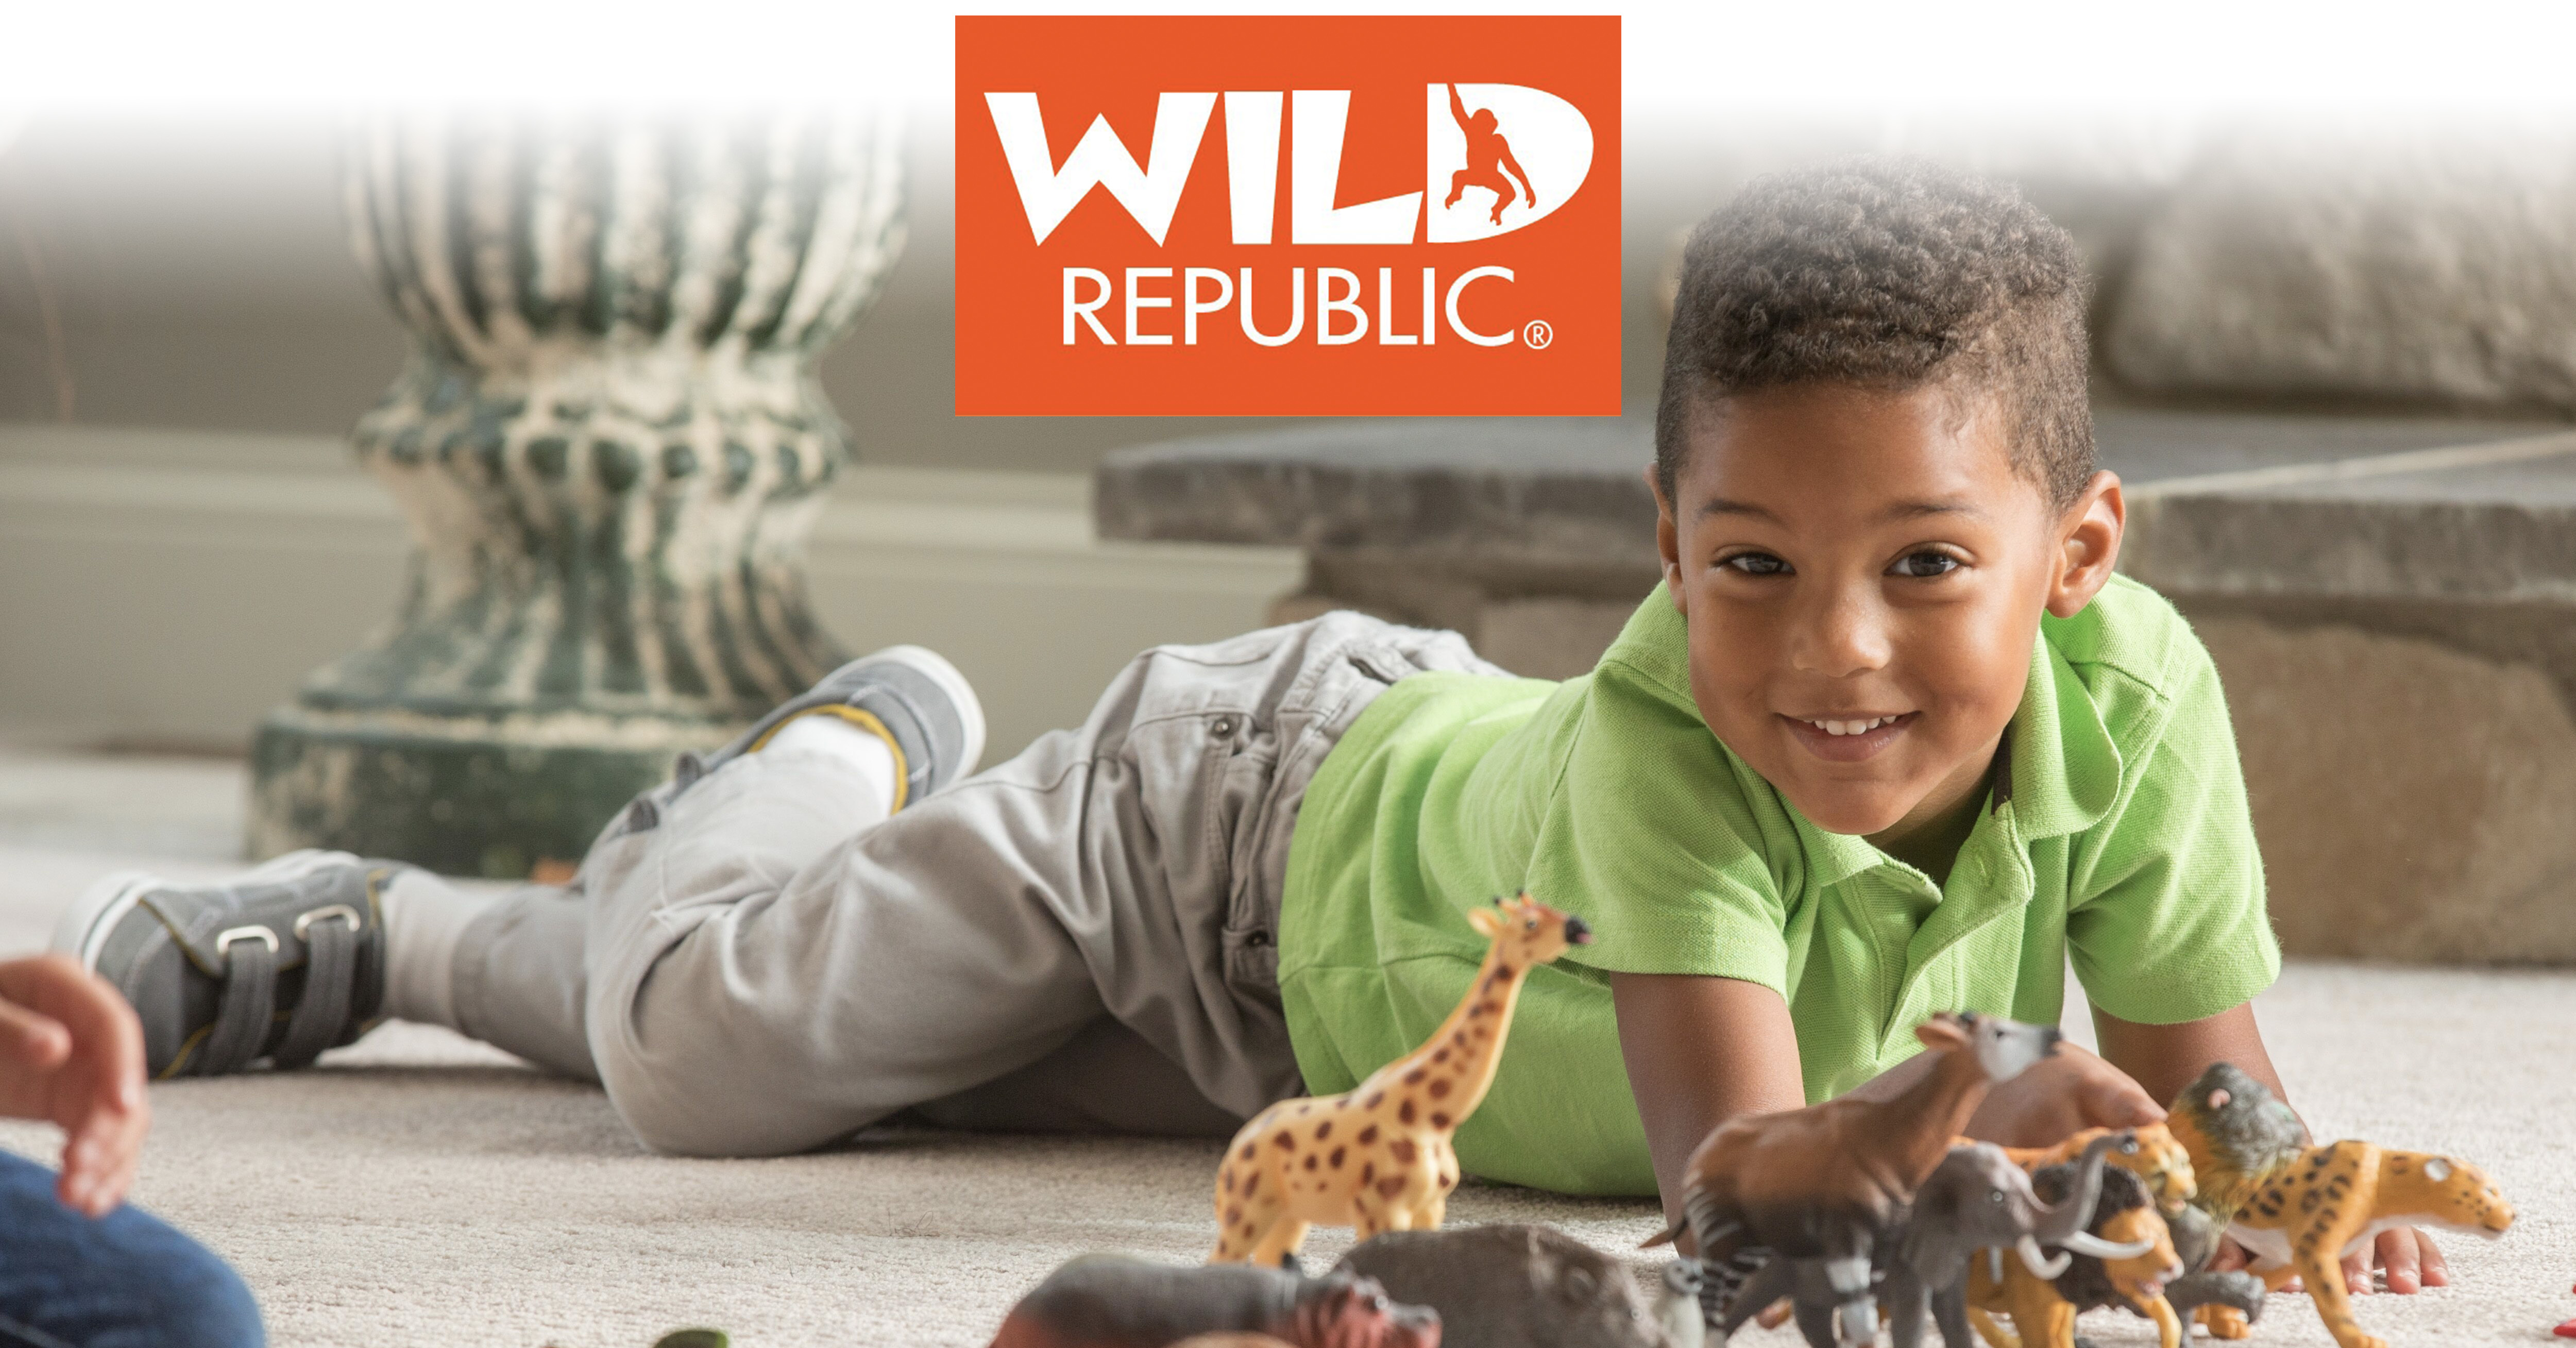 Wild Republic toy figurines main banner with penguins